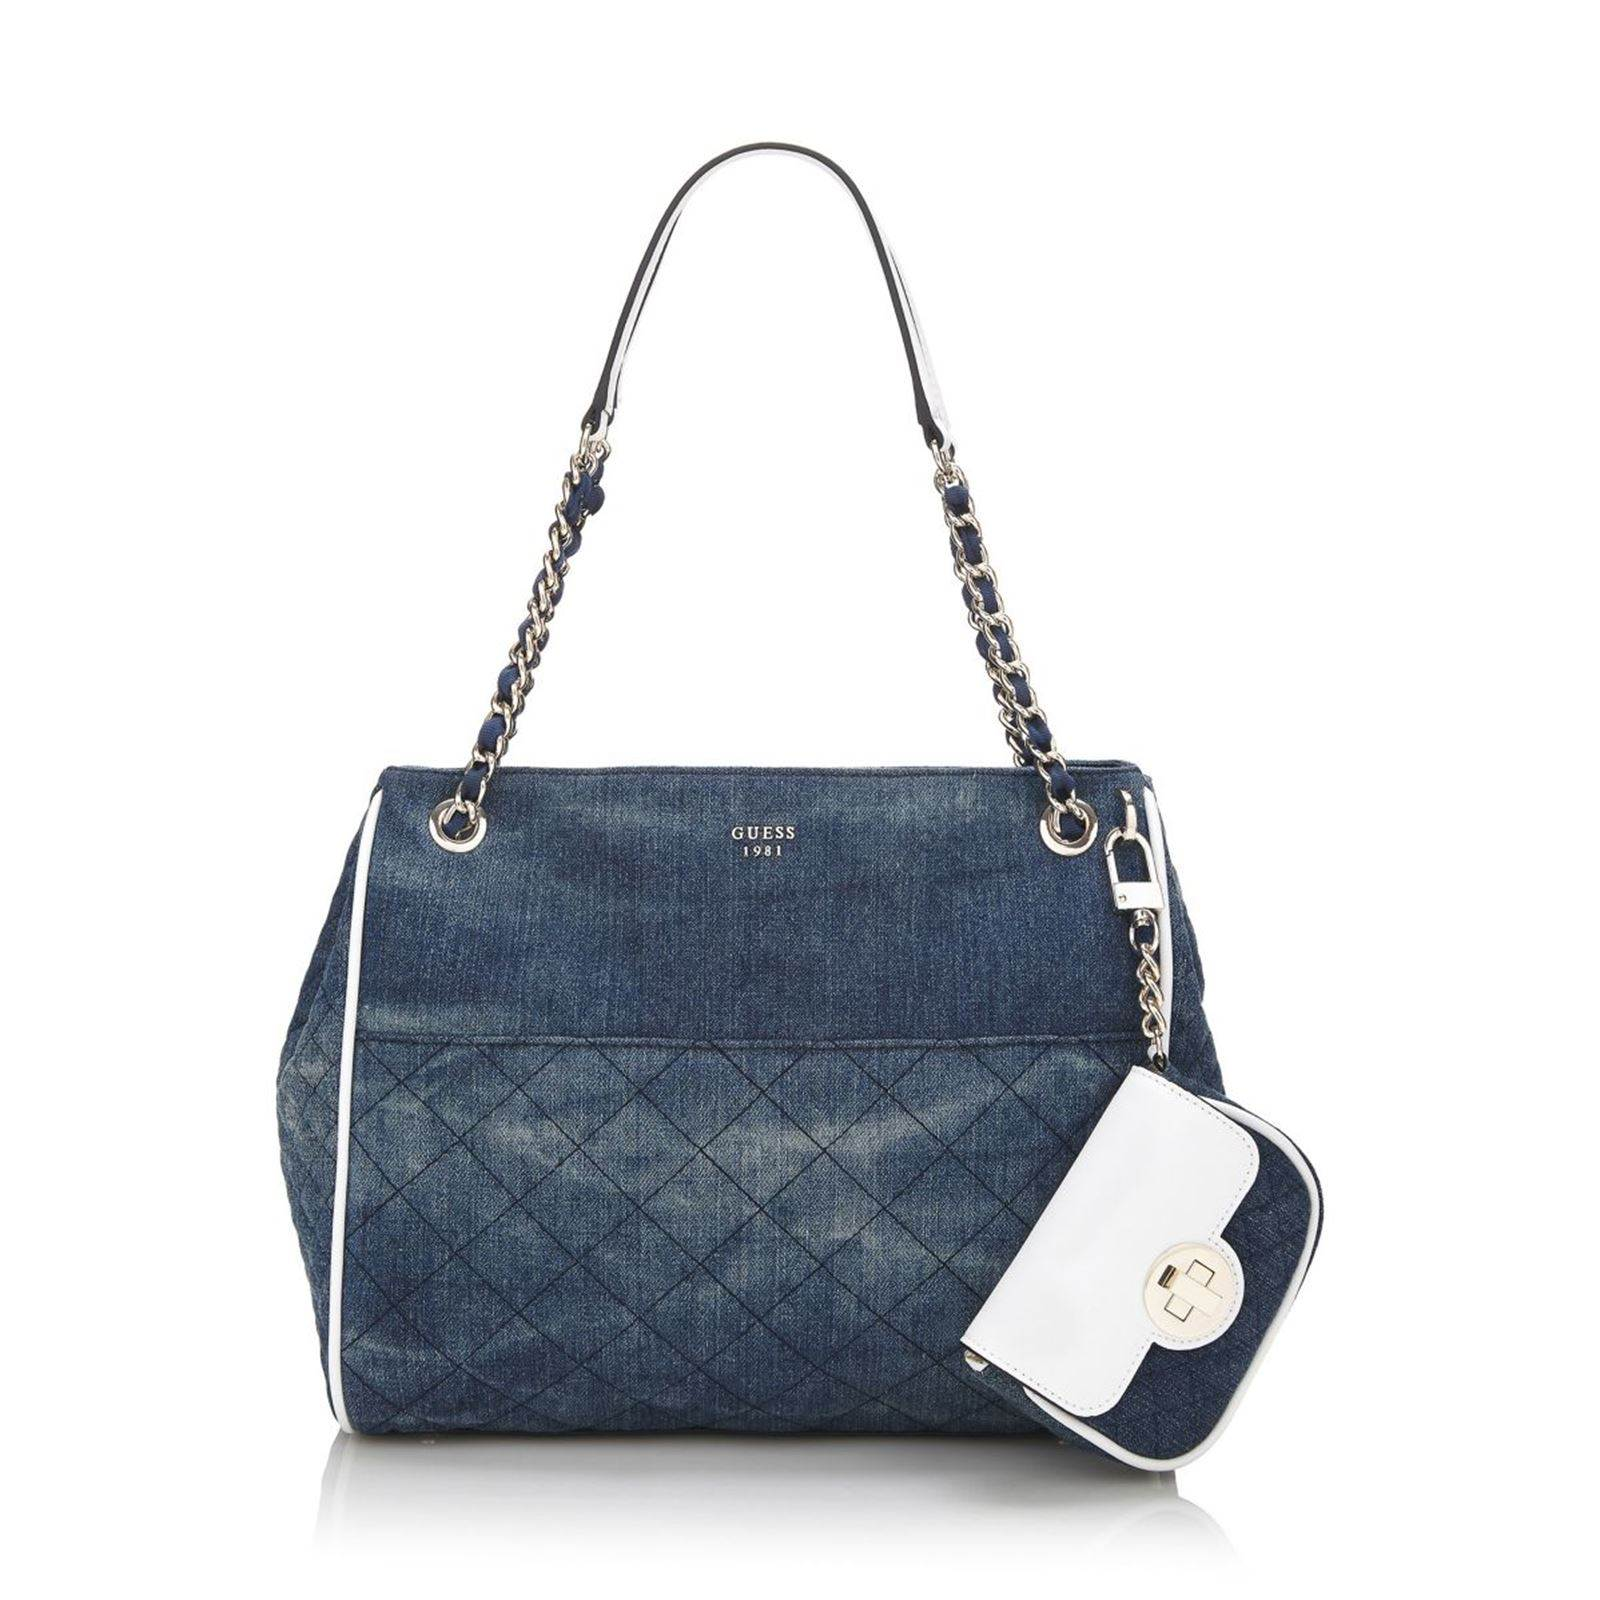 Guess Sac à main - bleu